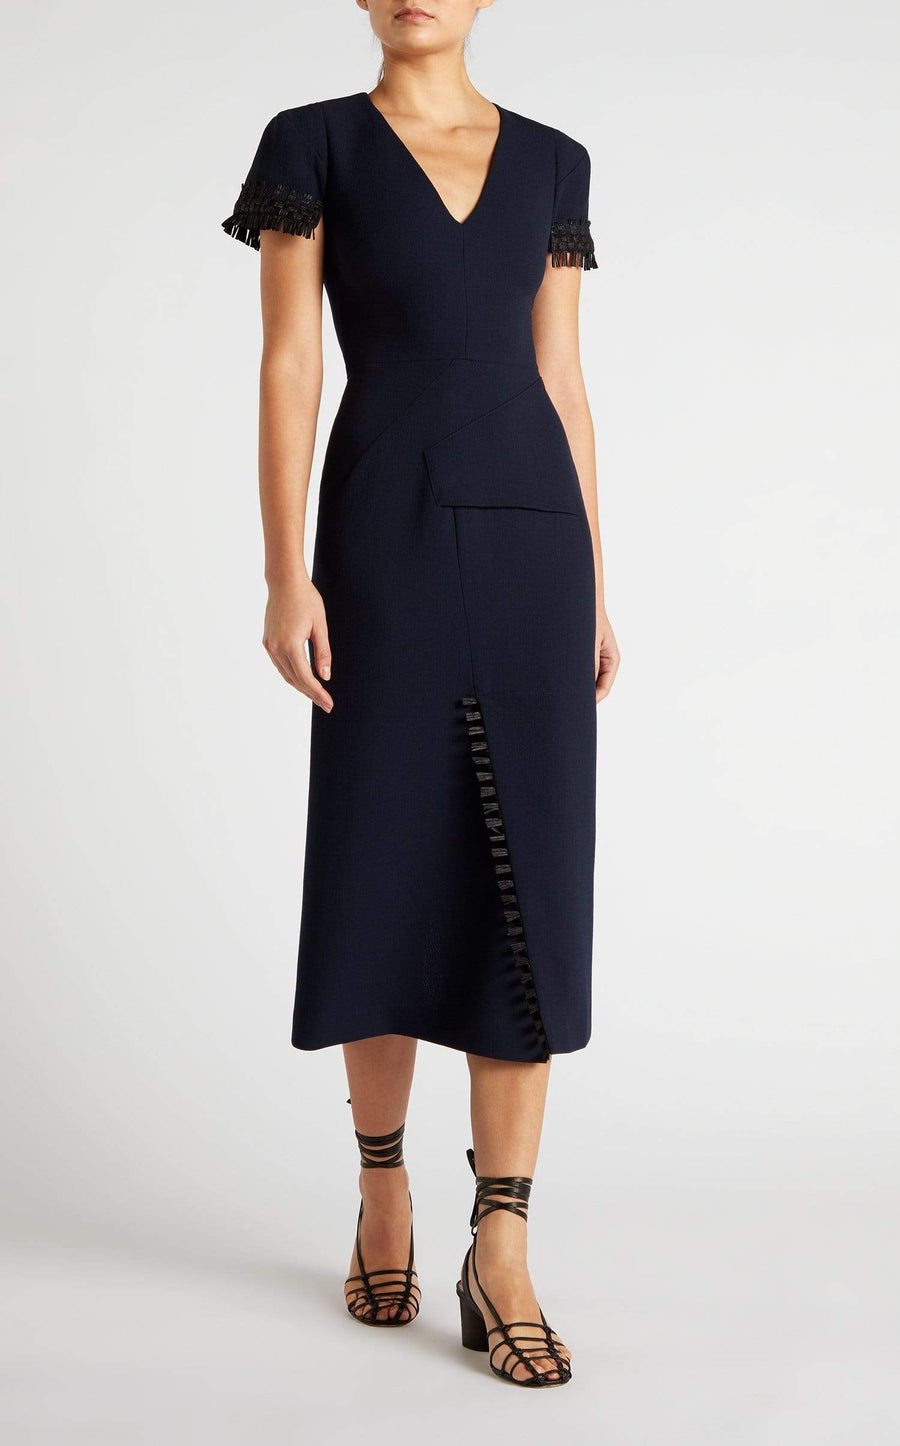 Fortana Dress In Navy/Black from Roland Mouret